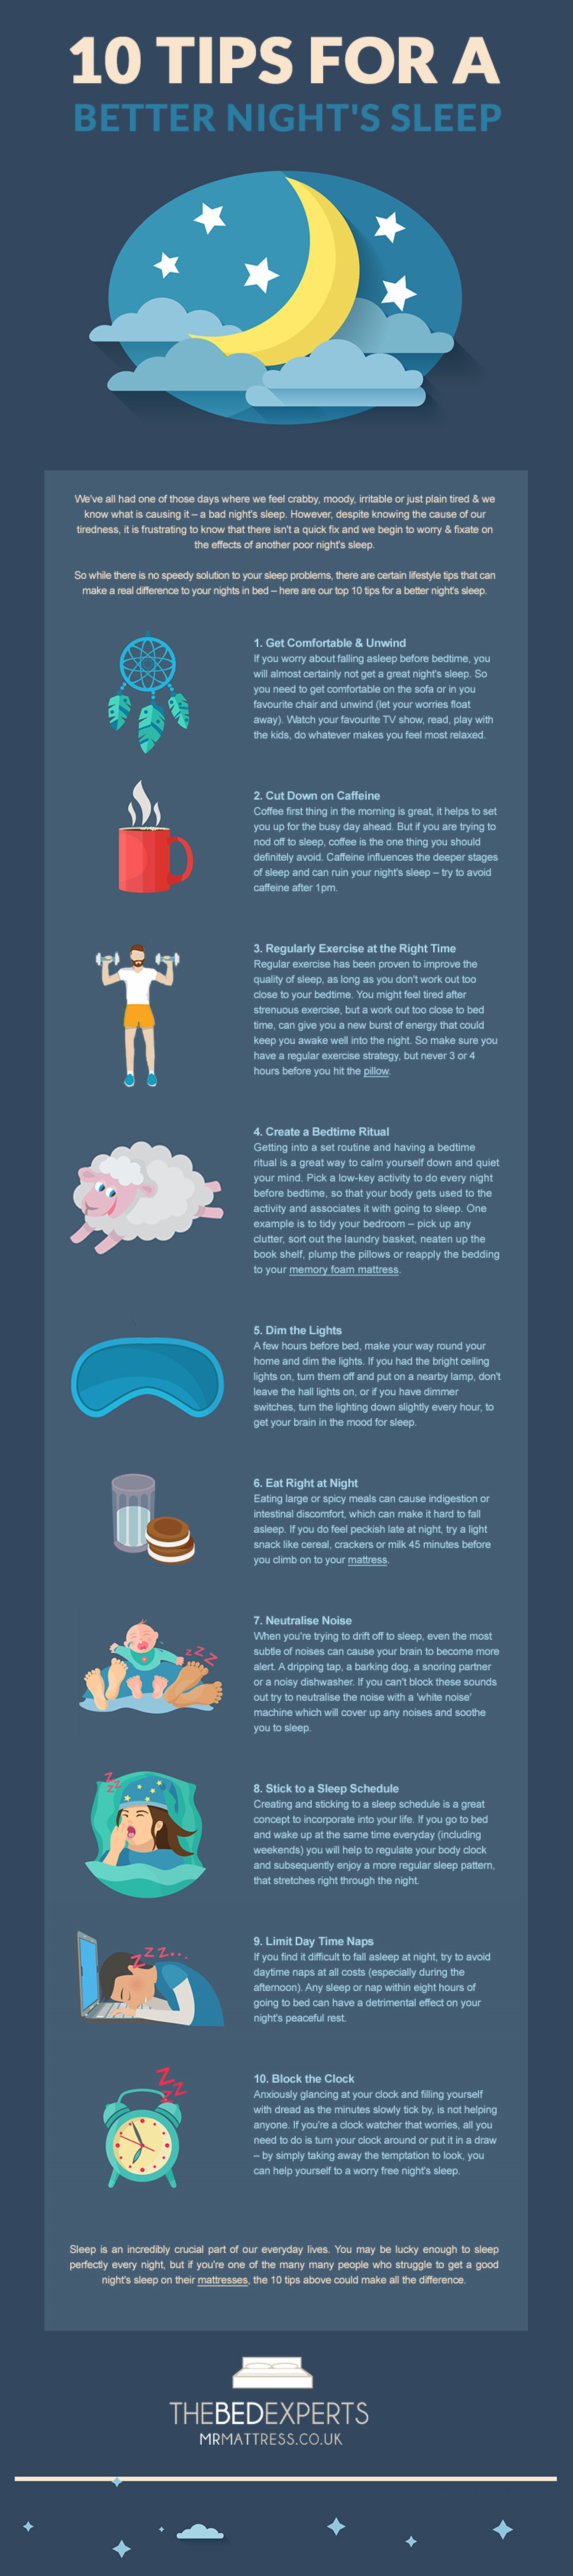 10 Tips For A Better Night's Sleep Infographic